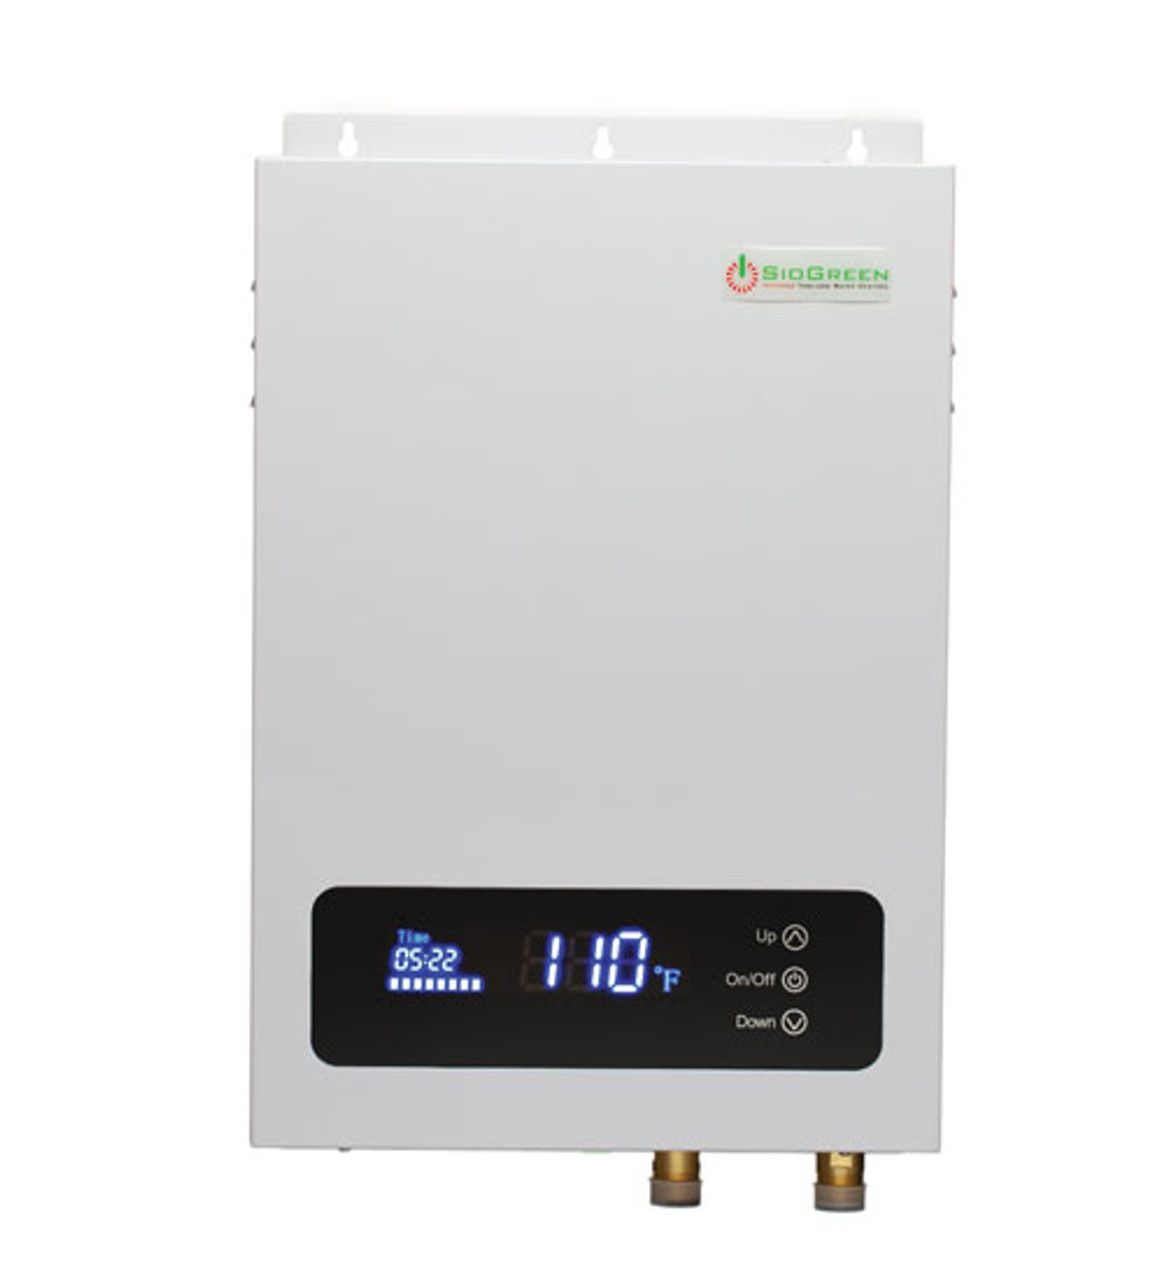 Siogreen Sio 14 Whole House Tankless Water Heater Siogreen Usa